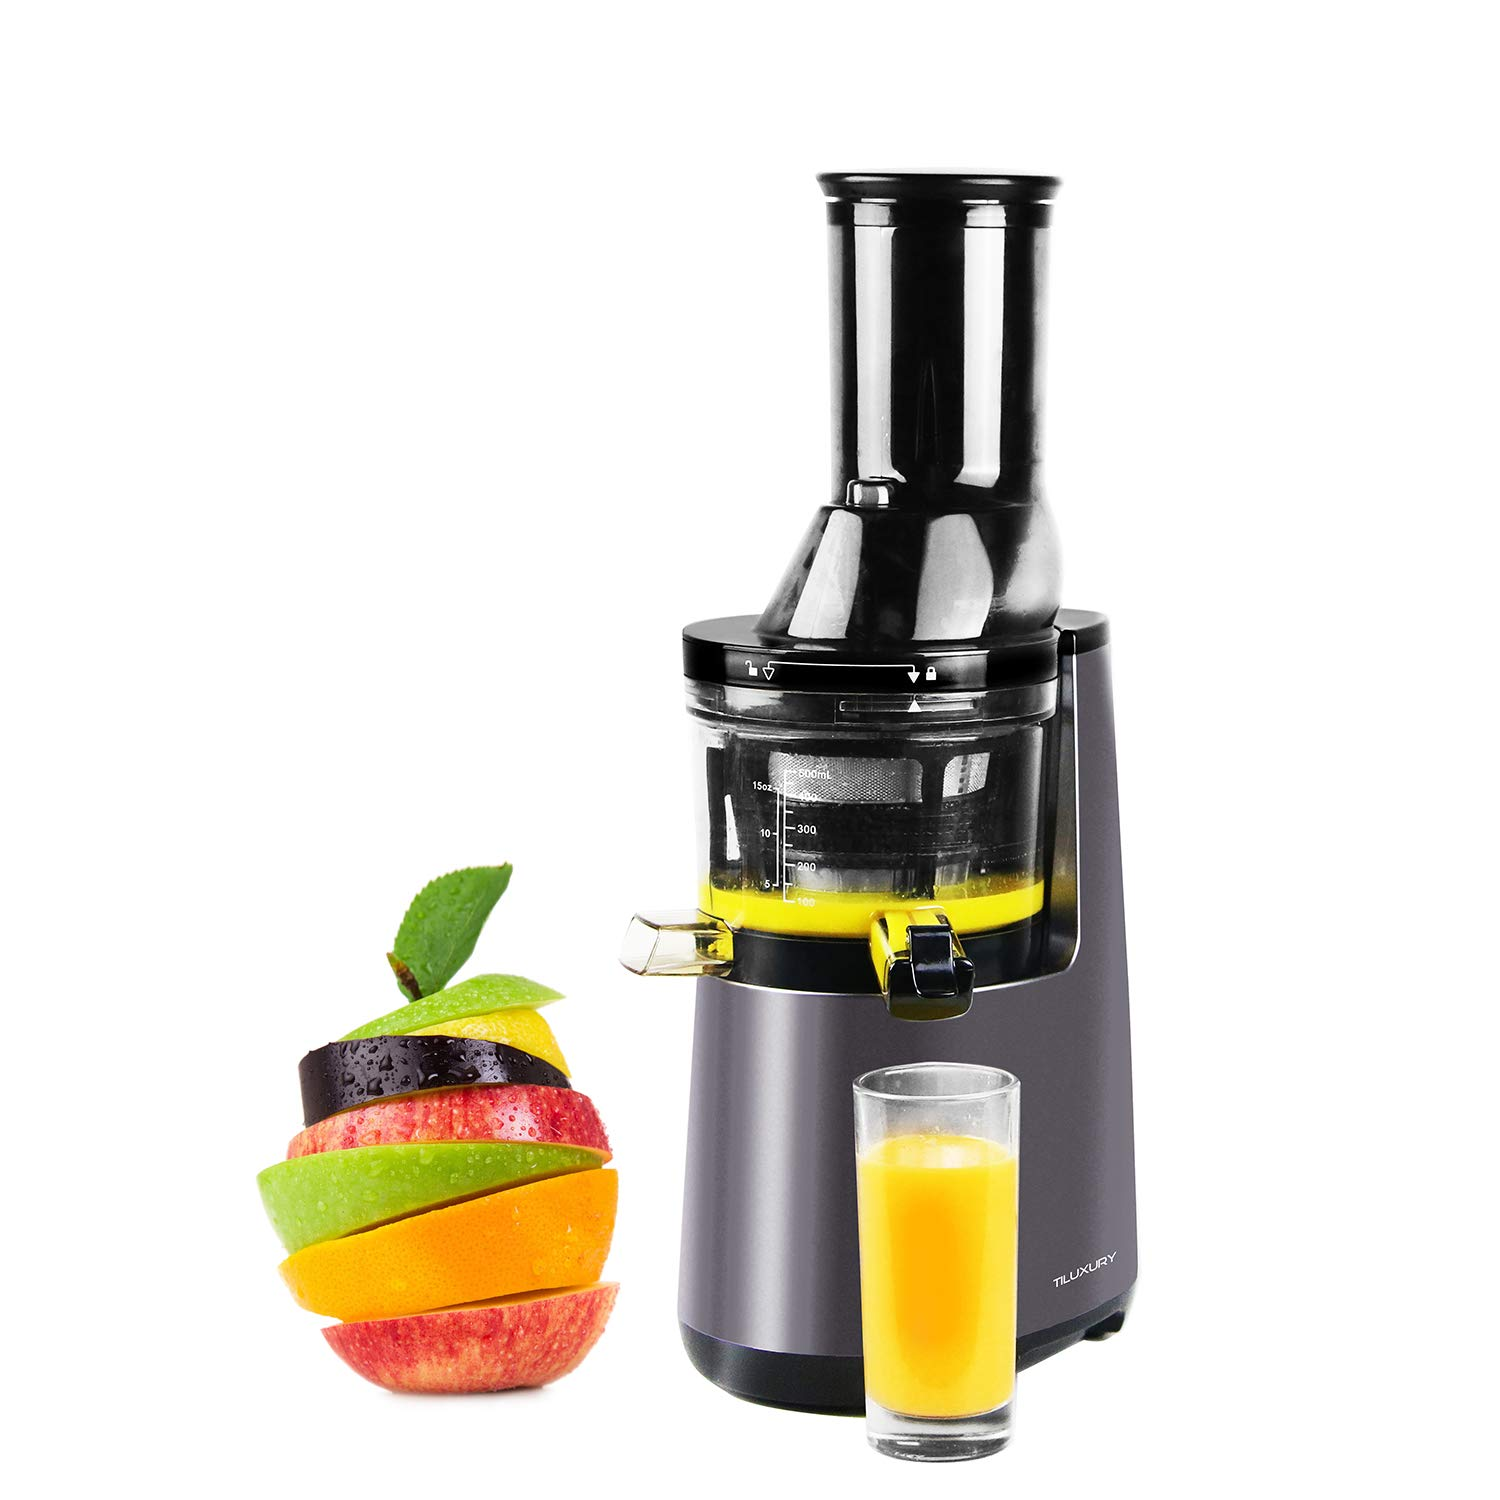 Slow Masticating Juicer Extractor, Cold Press Juicer,Cold Press Juicer Machine with 3